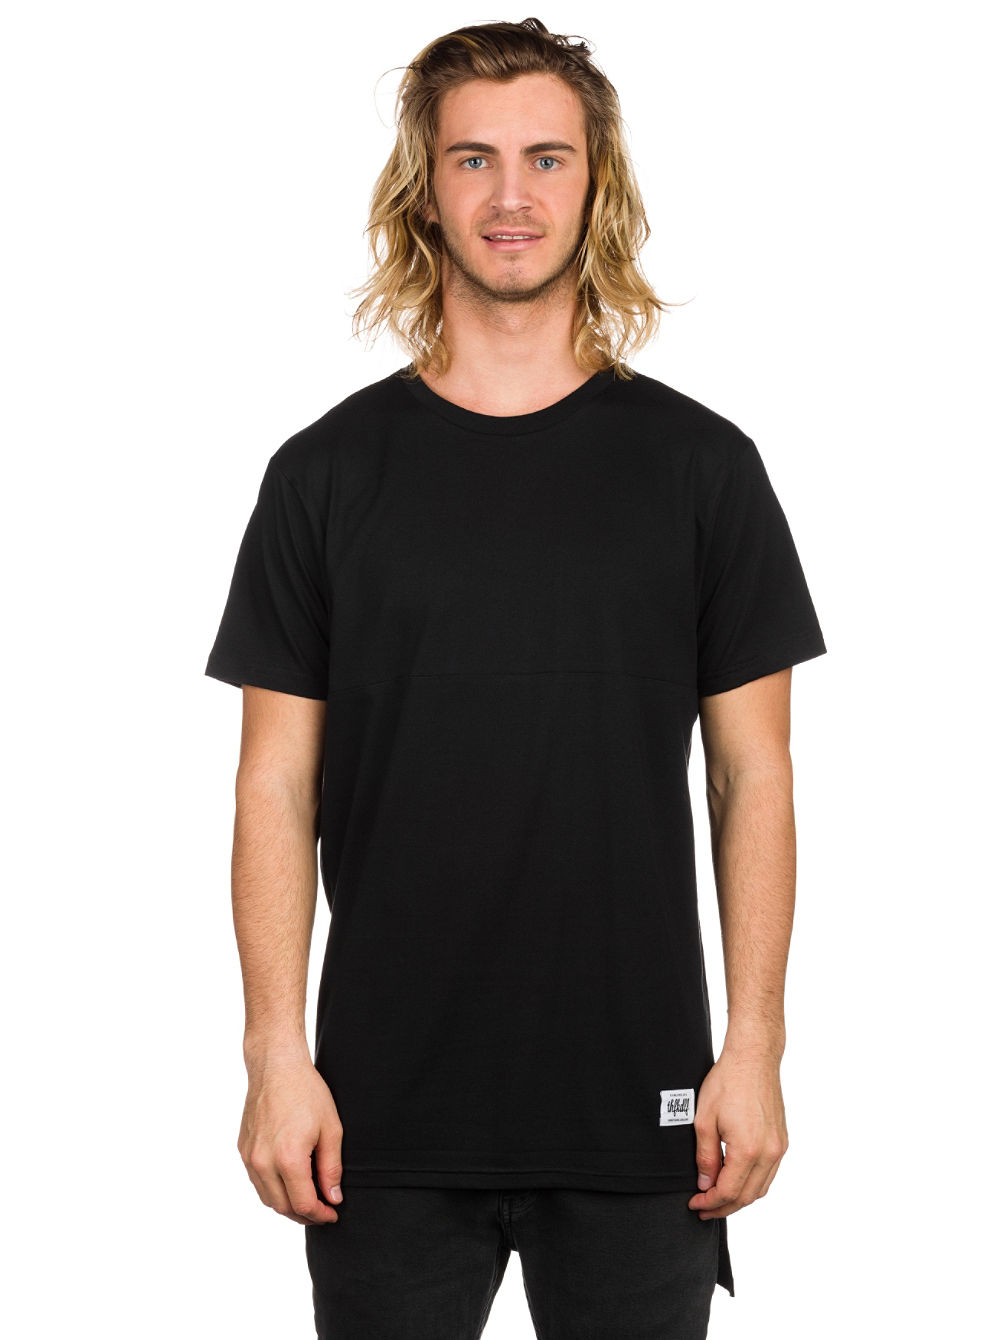 buy thfkdlf drop back panel t shirt online at blue